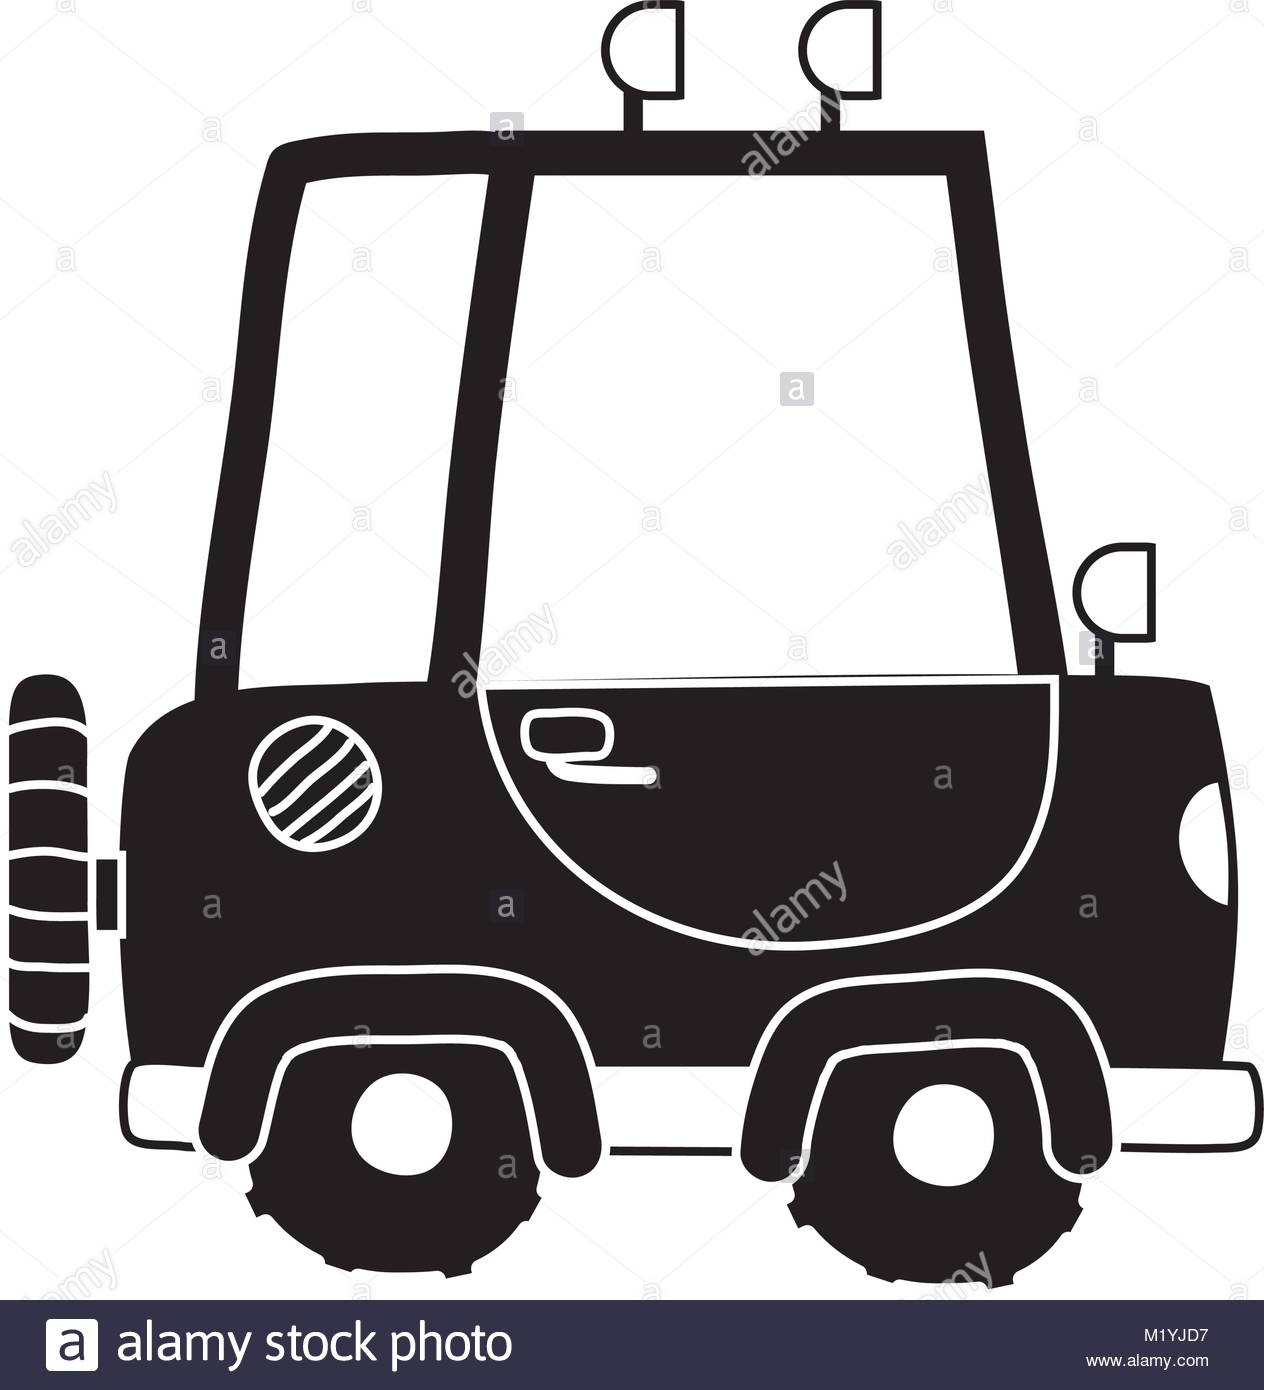 1264x1390 Tractor Silhouette Stock Photos Amp Tractor Silhouette Stock Images